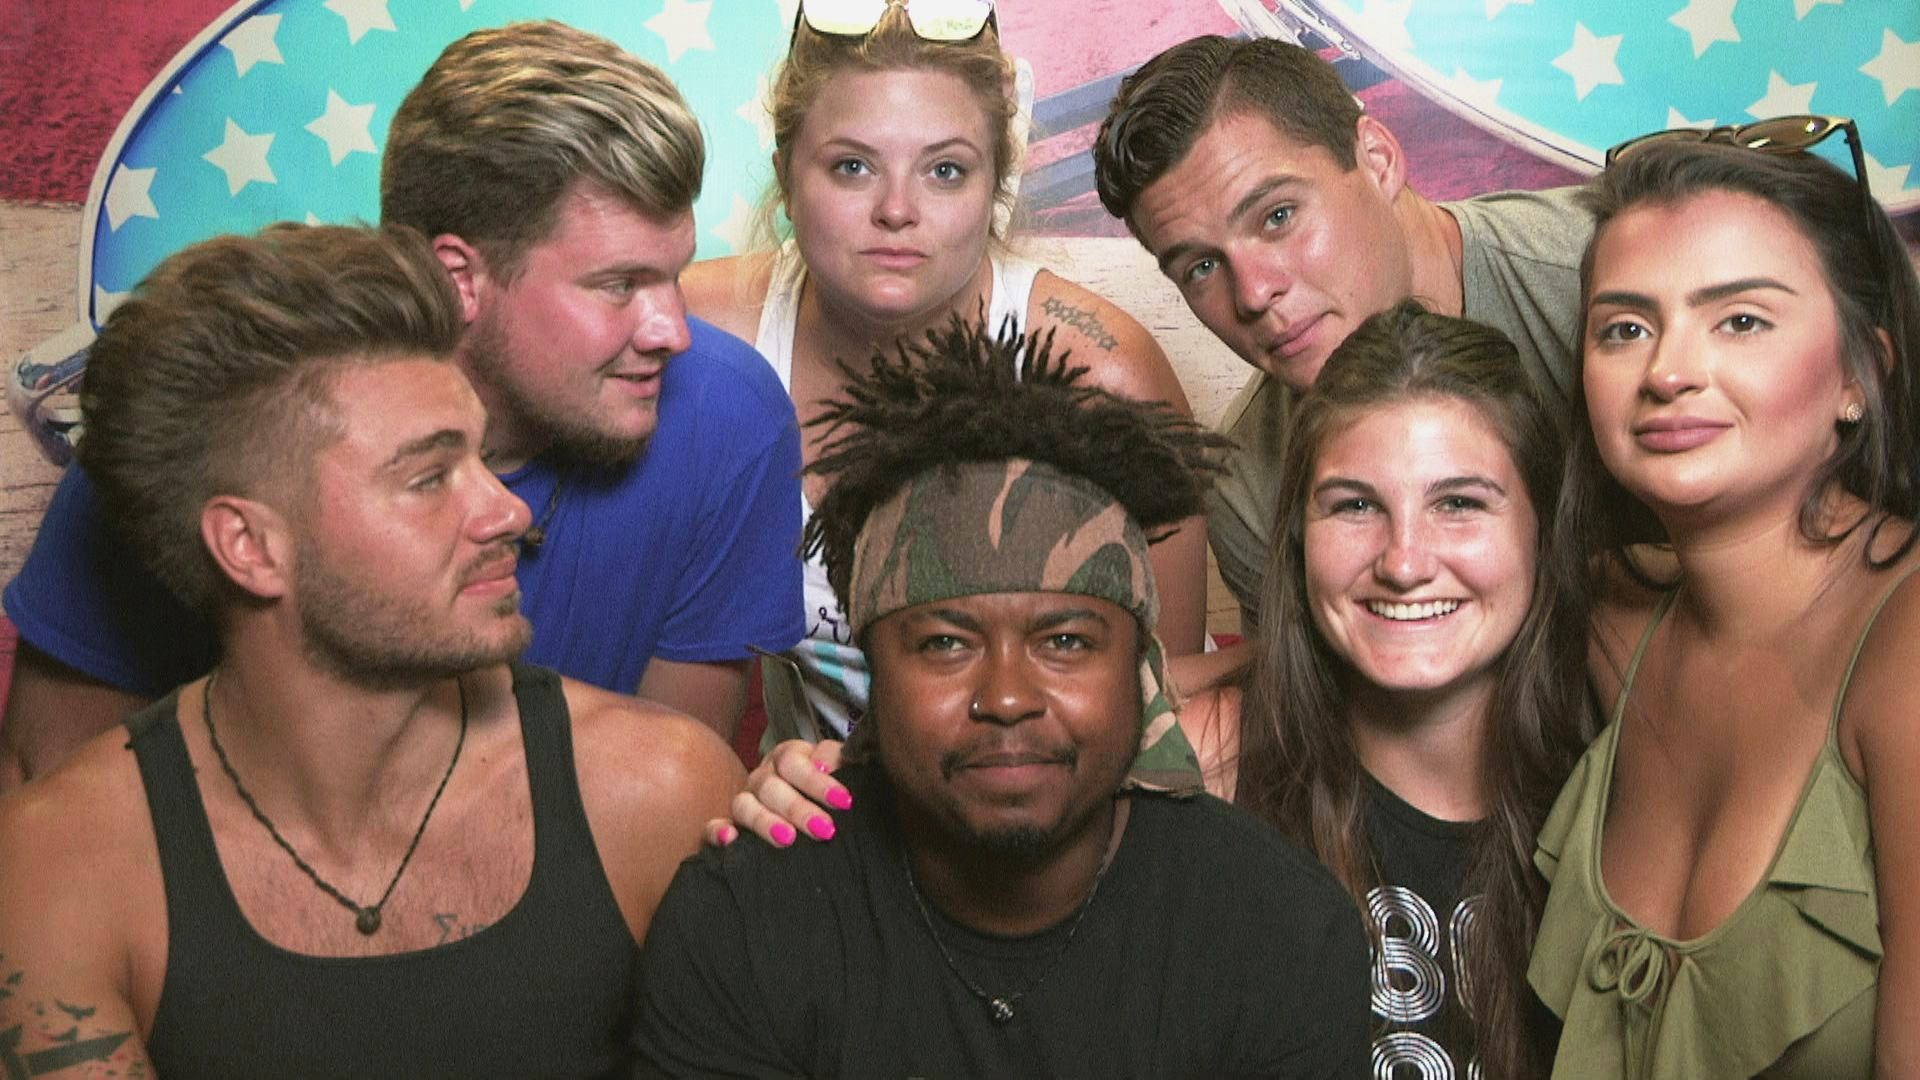 floribama shore season 2 online free